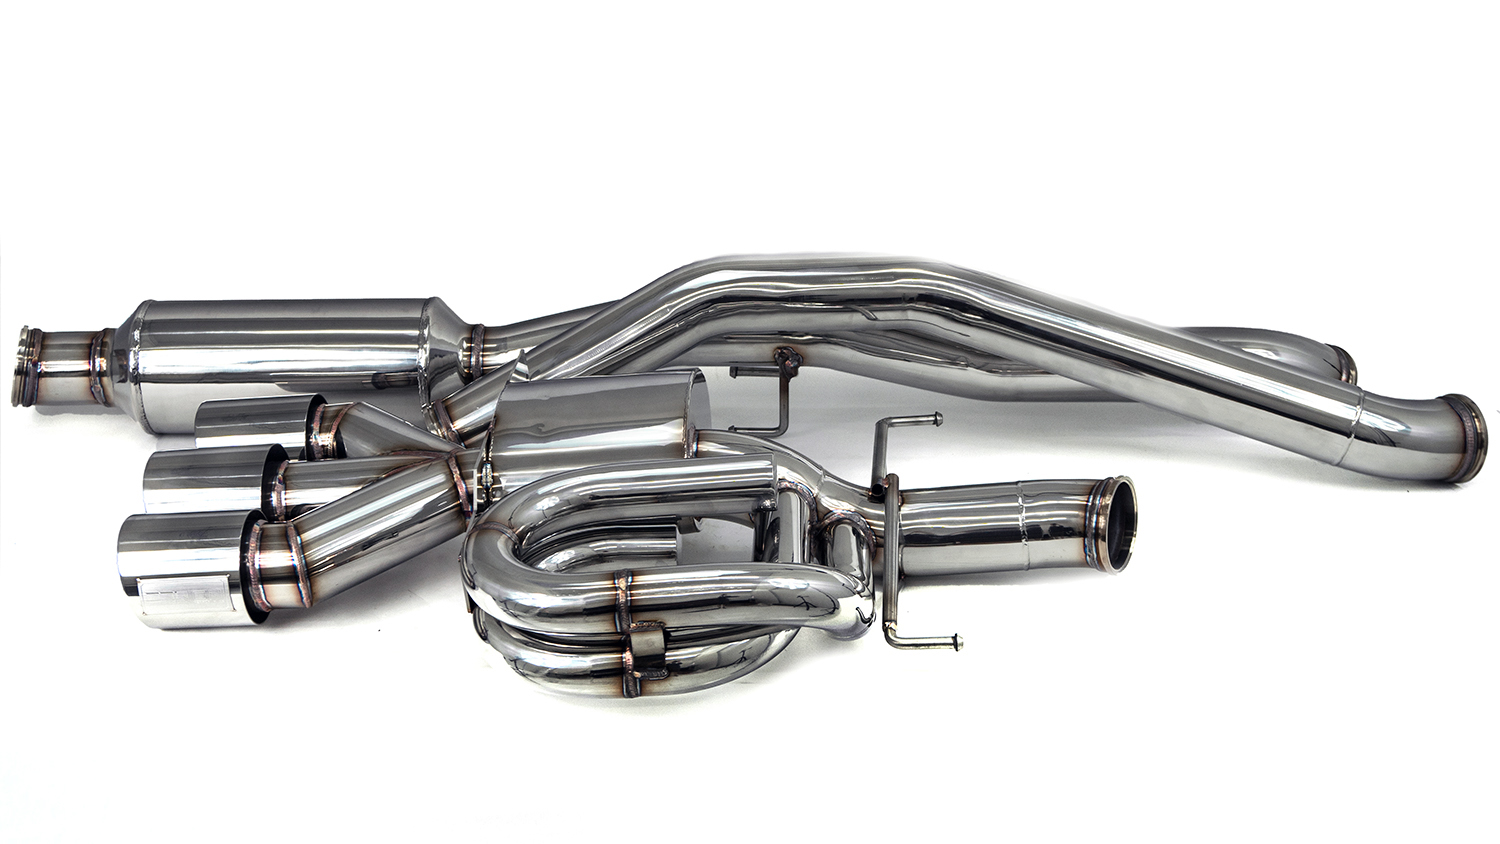 100% T304 Stainless Steel from downpipe to tips